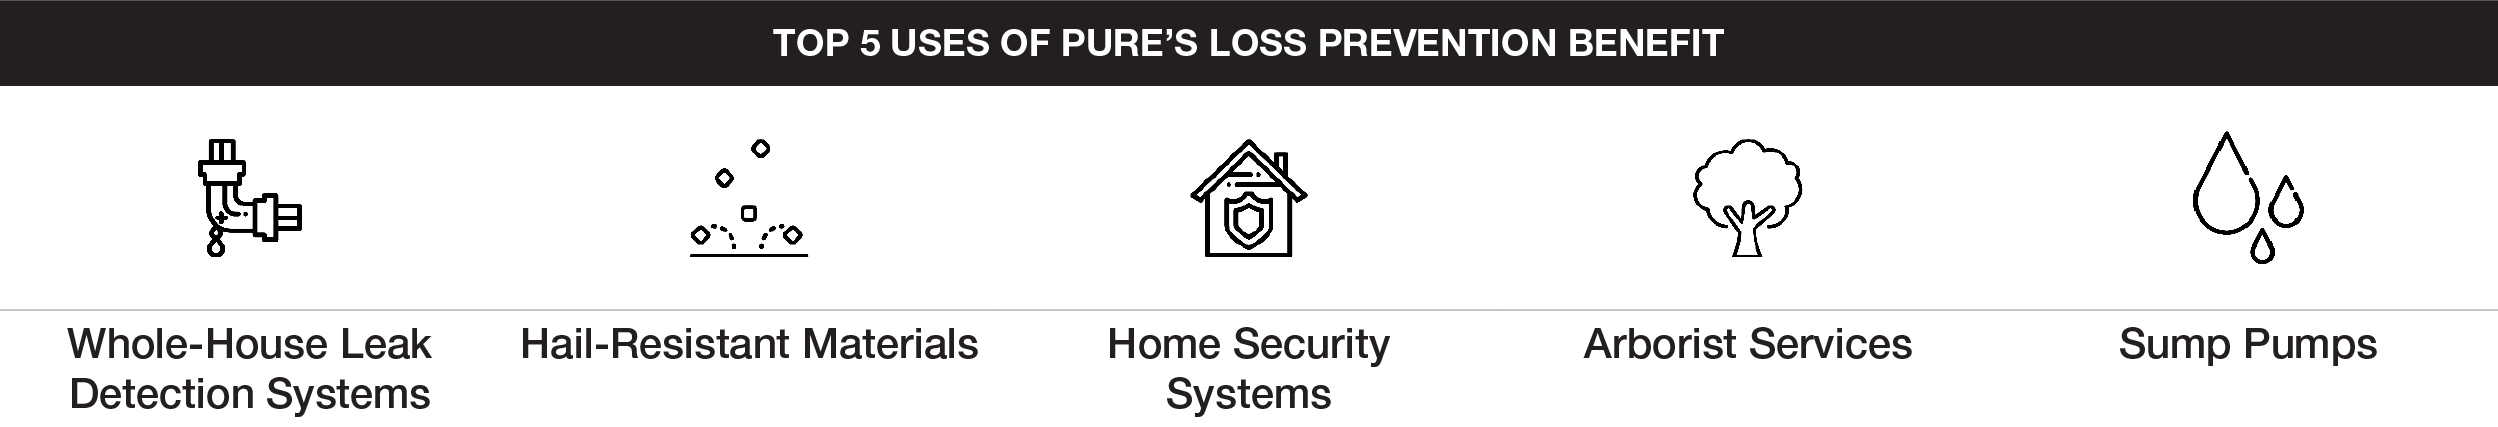 Claims and Expenses - Loss Prevention Benefit.png